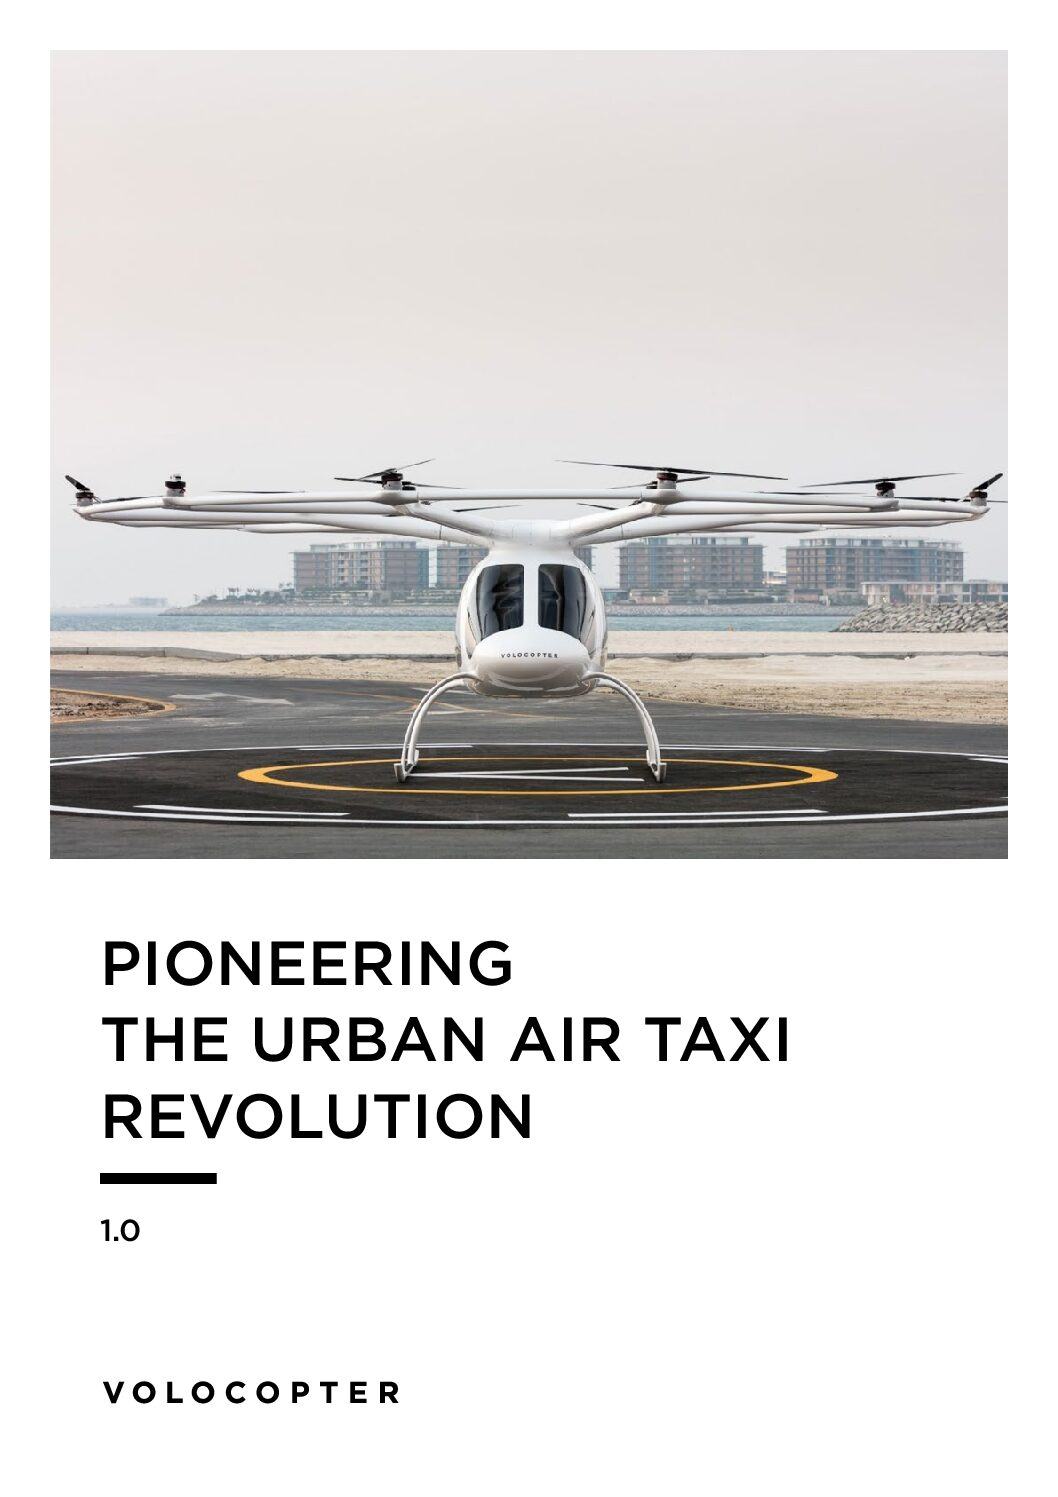 Volocopter: Pioneering the Urban Air Taxi Revolution